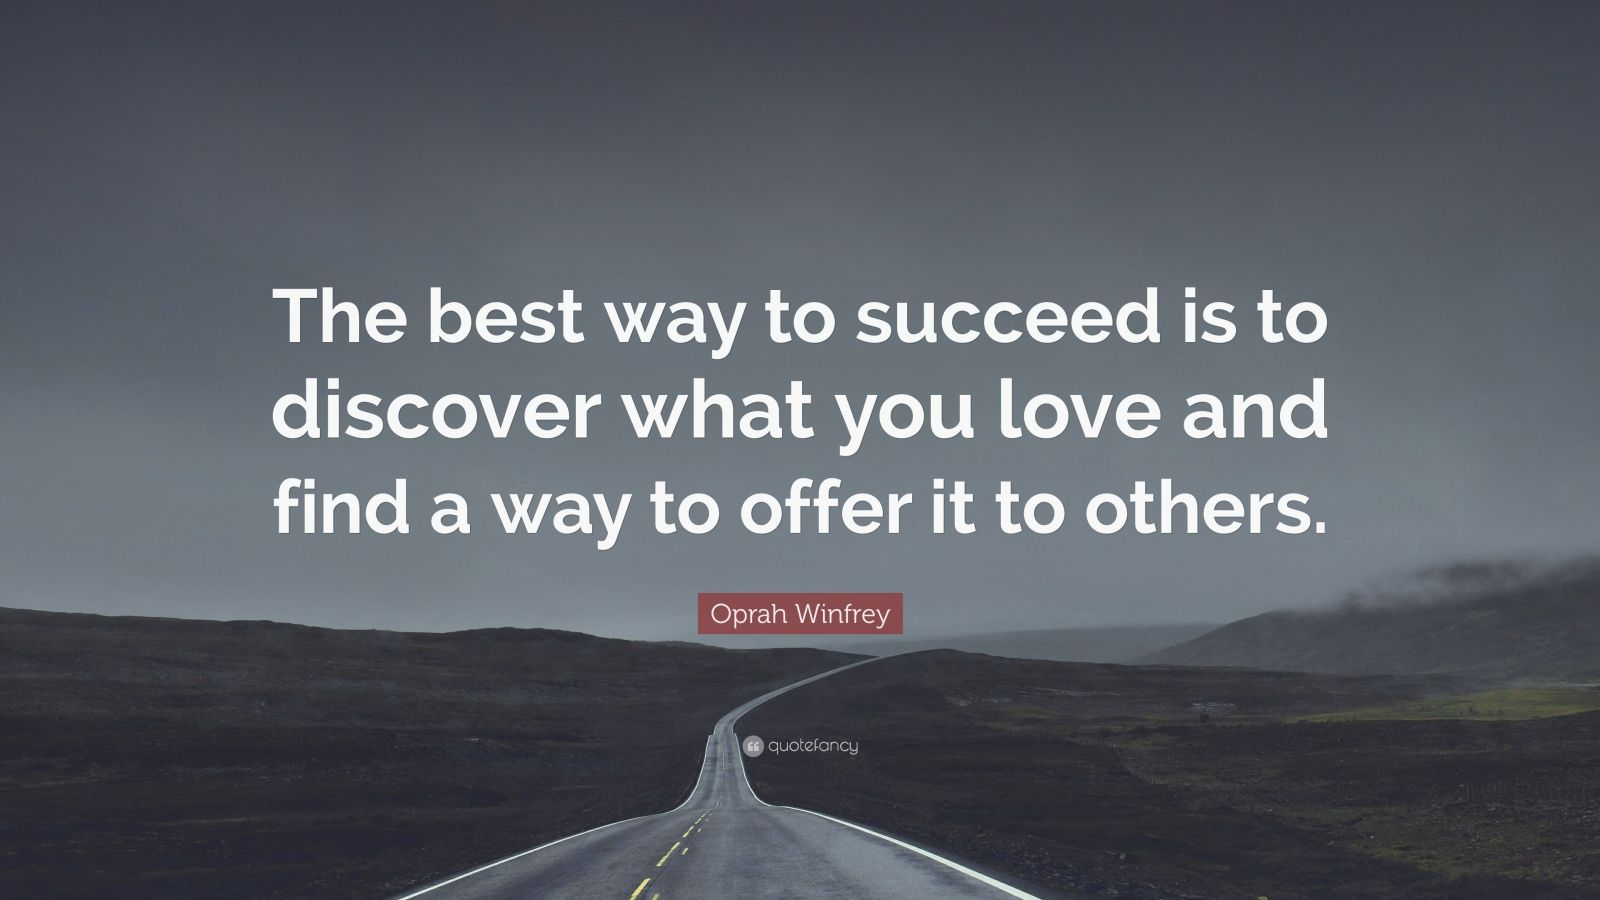 """Oprah Winfrey Quote: """"The best way to succeed is to discover what you love and find a way to offer it to others."""""""